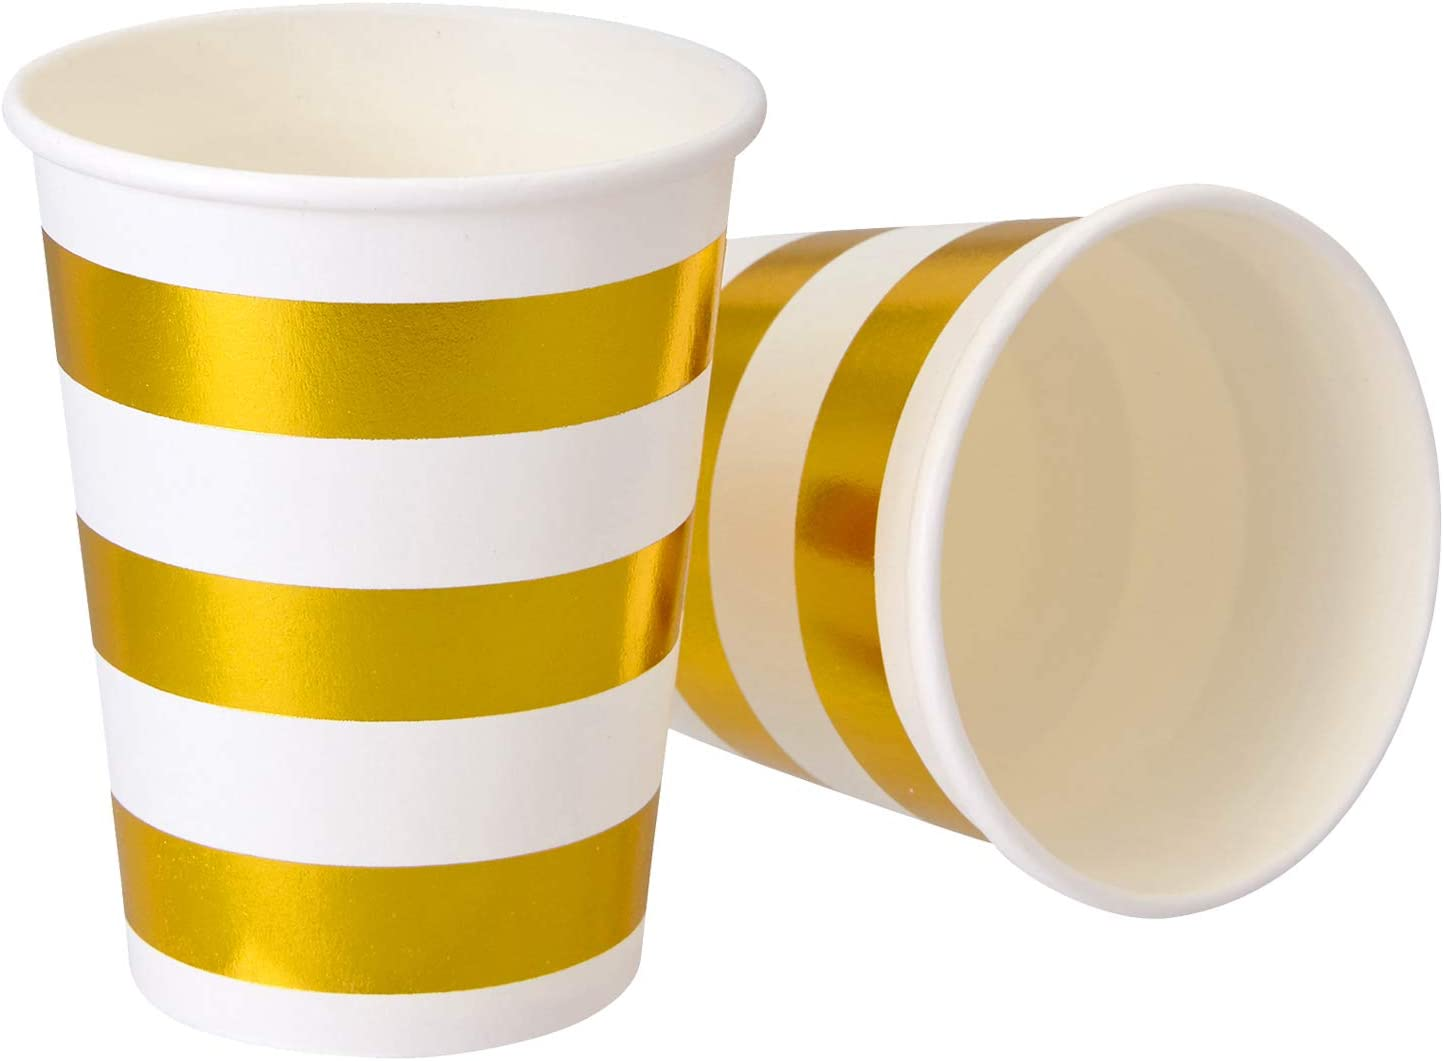 PARTY DISPOSABLE DECORATIVE HOT CUPS | 9 oz | Metallic Gold Stripe | for Upscale Parties and Events | 24 pc